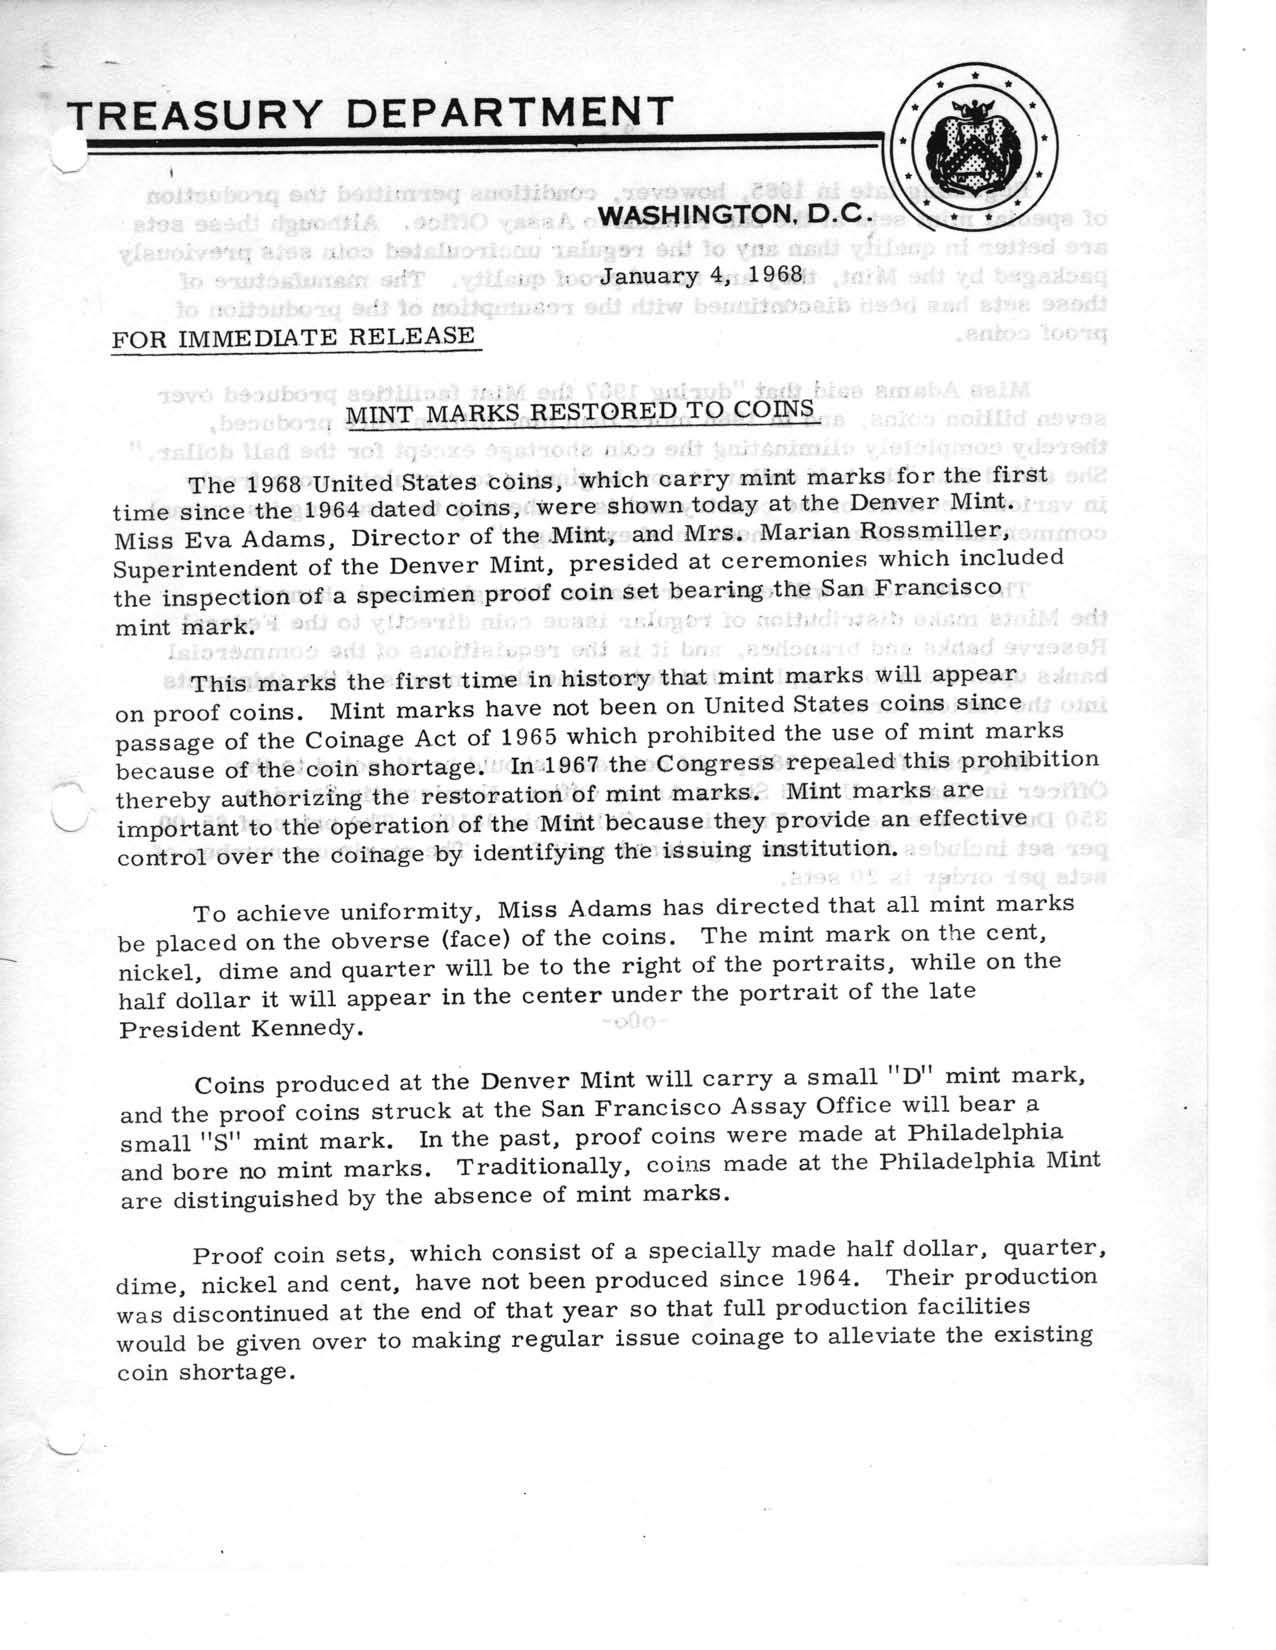 Historic Press Release: Mint Marks Restored, Page 1